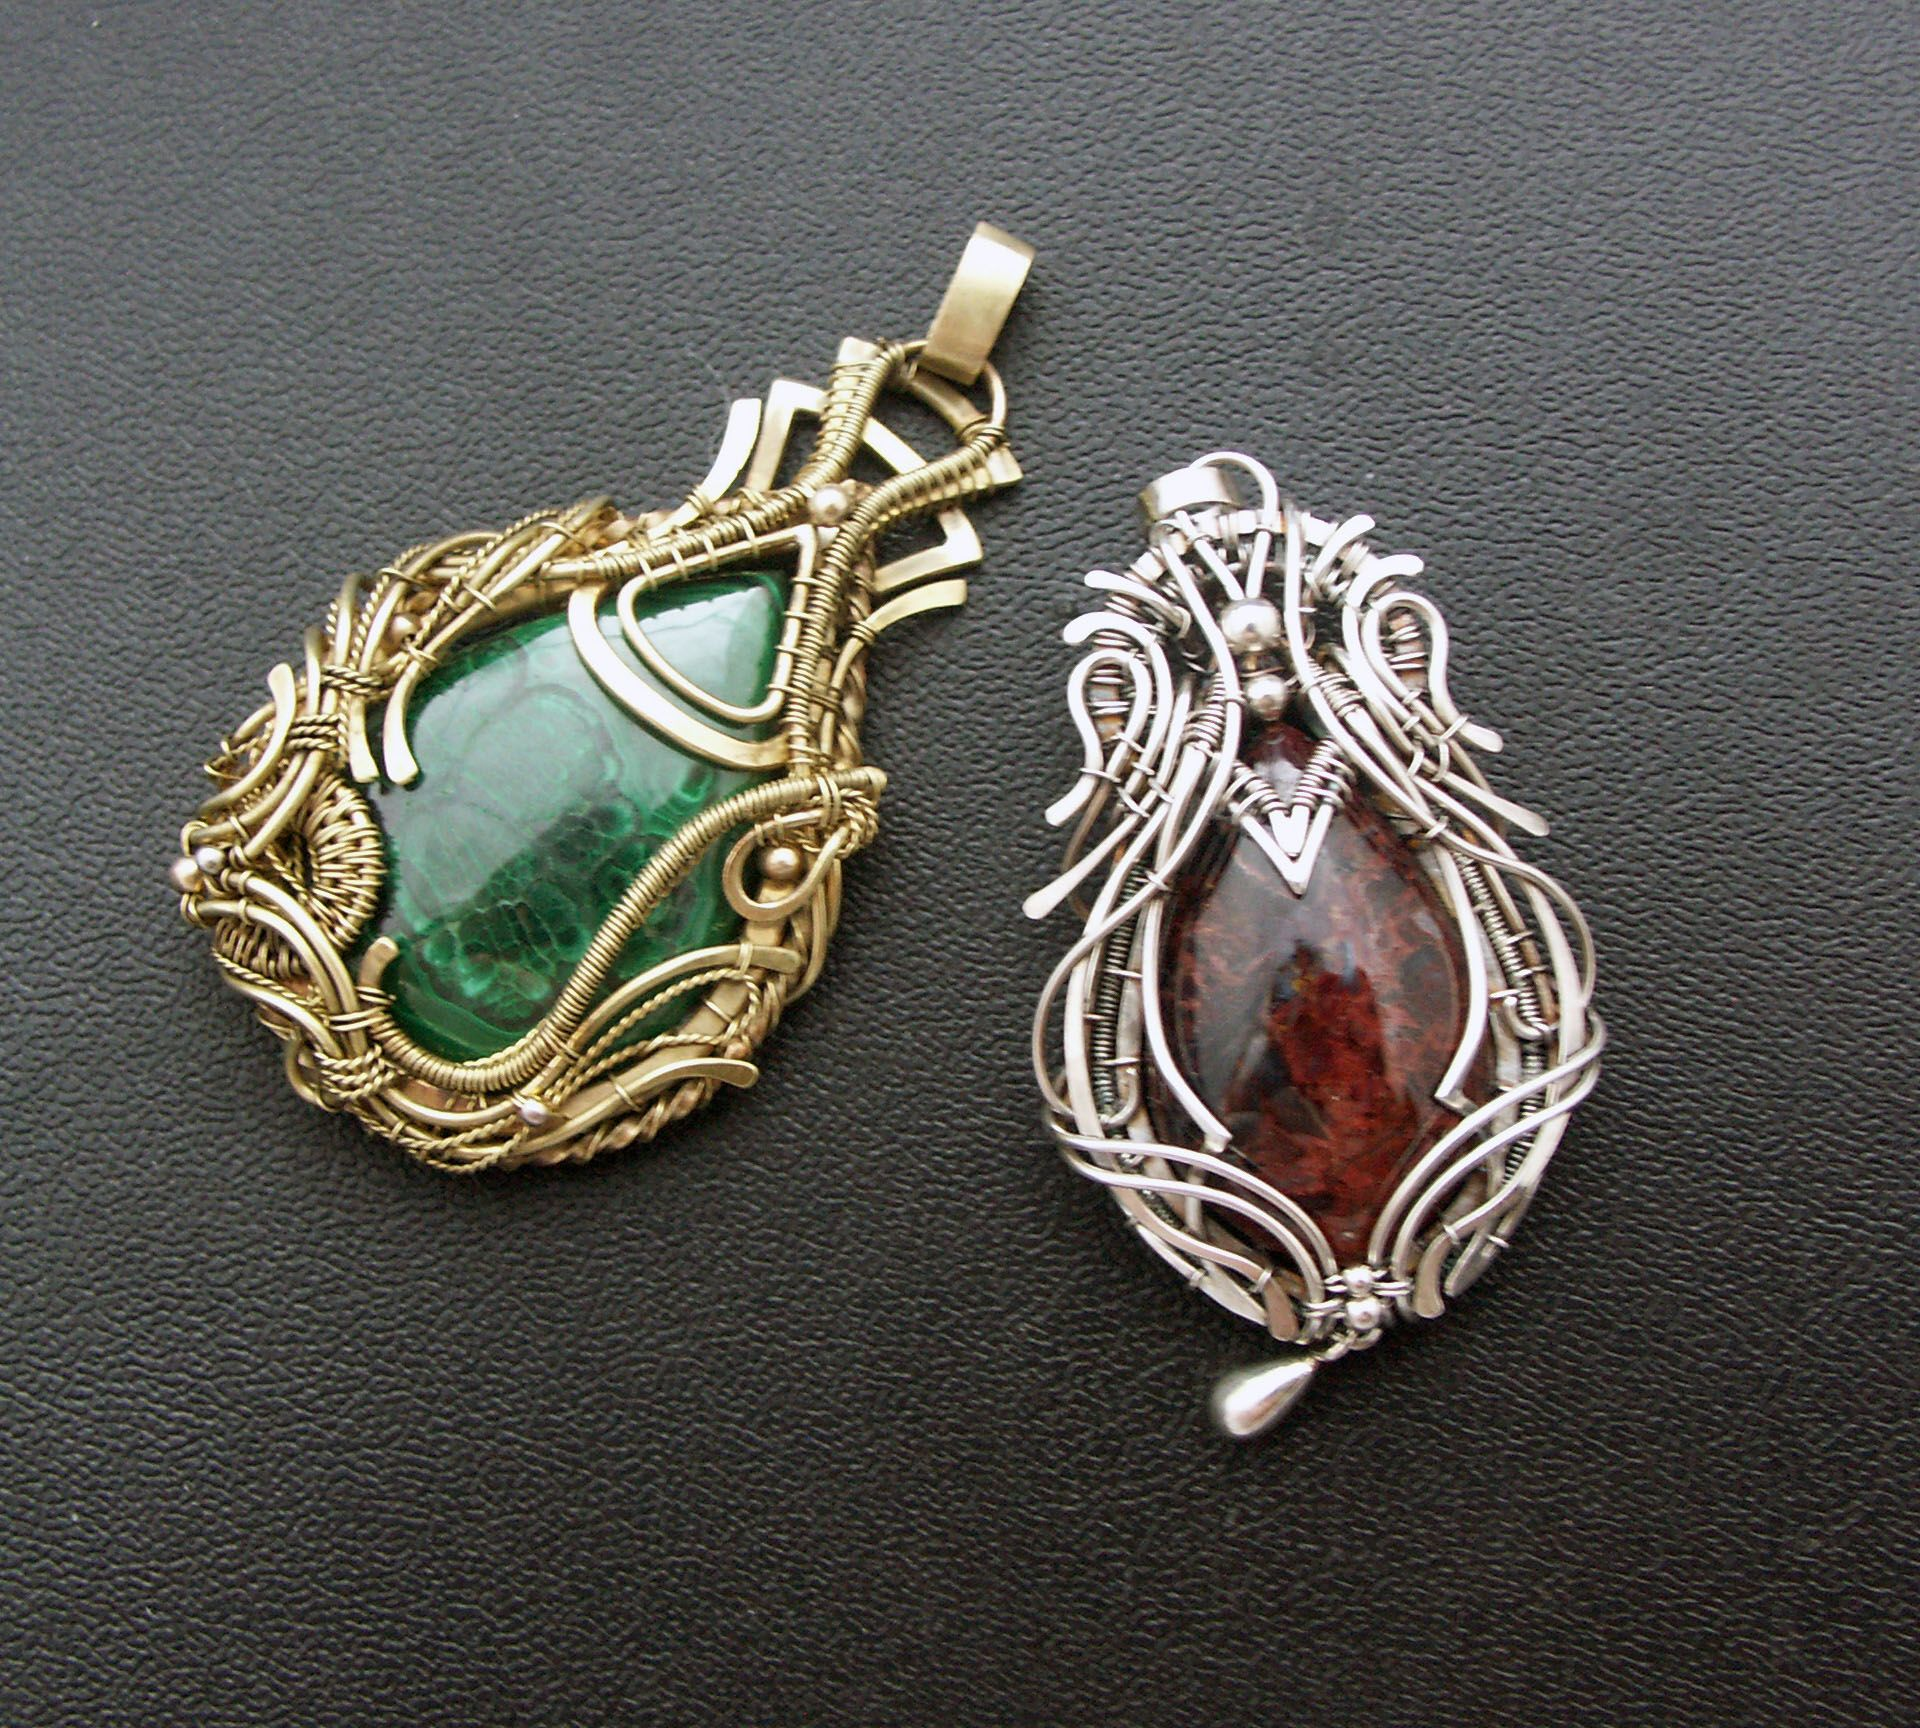 Pin by Наталья Иванова on My Jewelry wire wrap | Pinterest | Wire ...